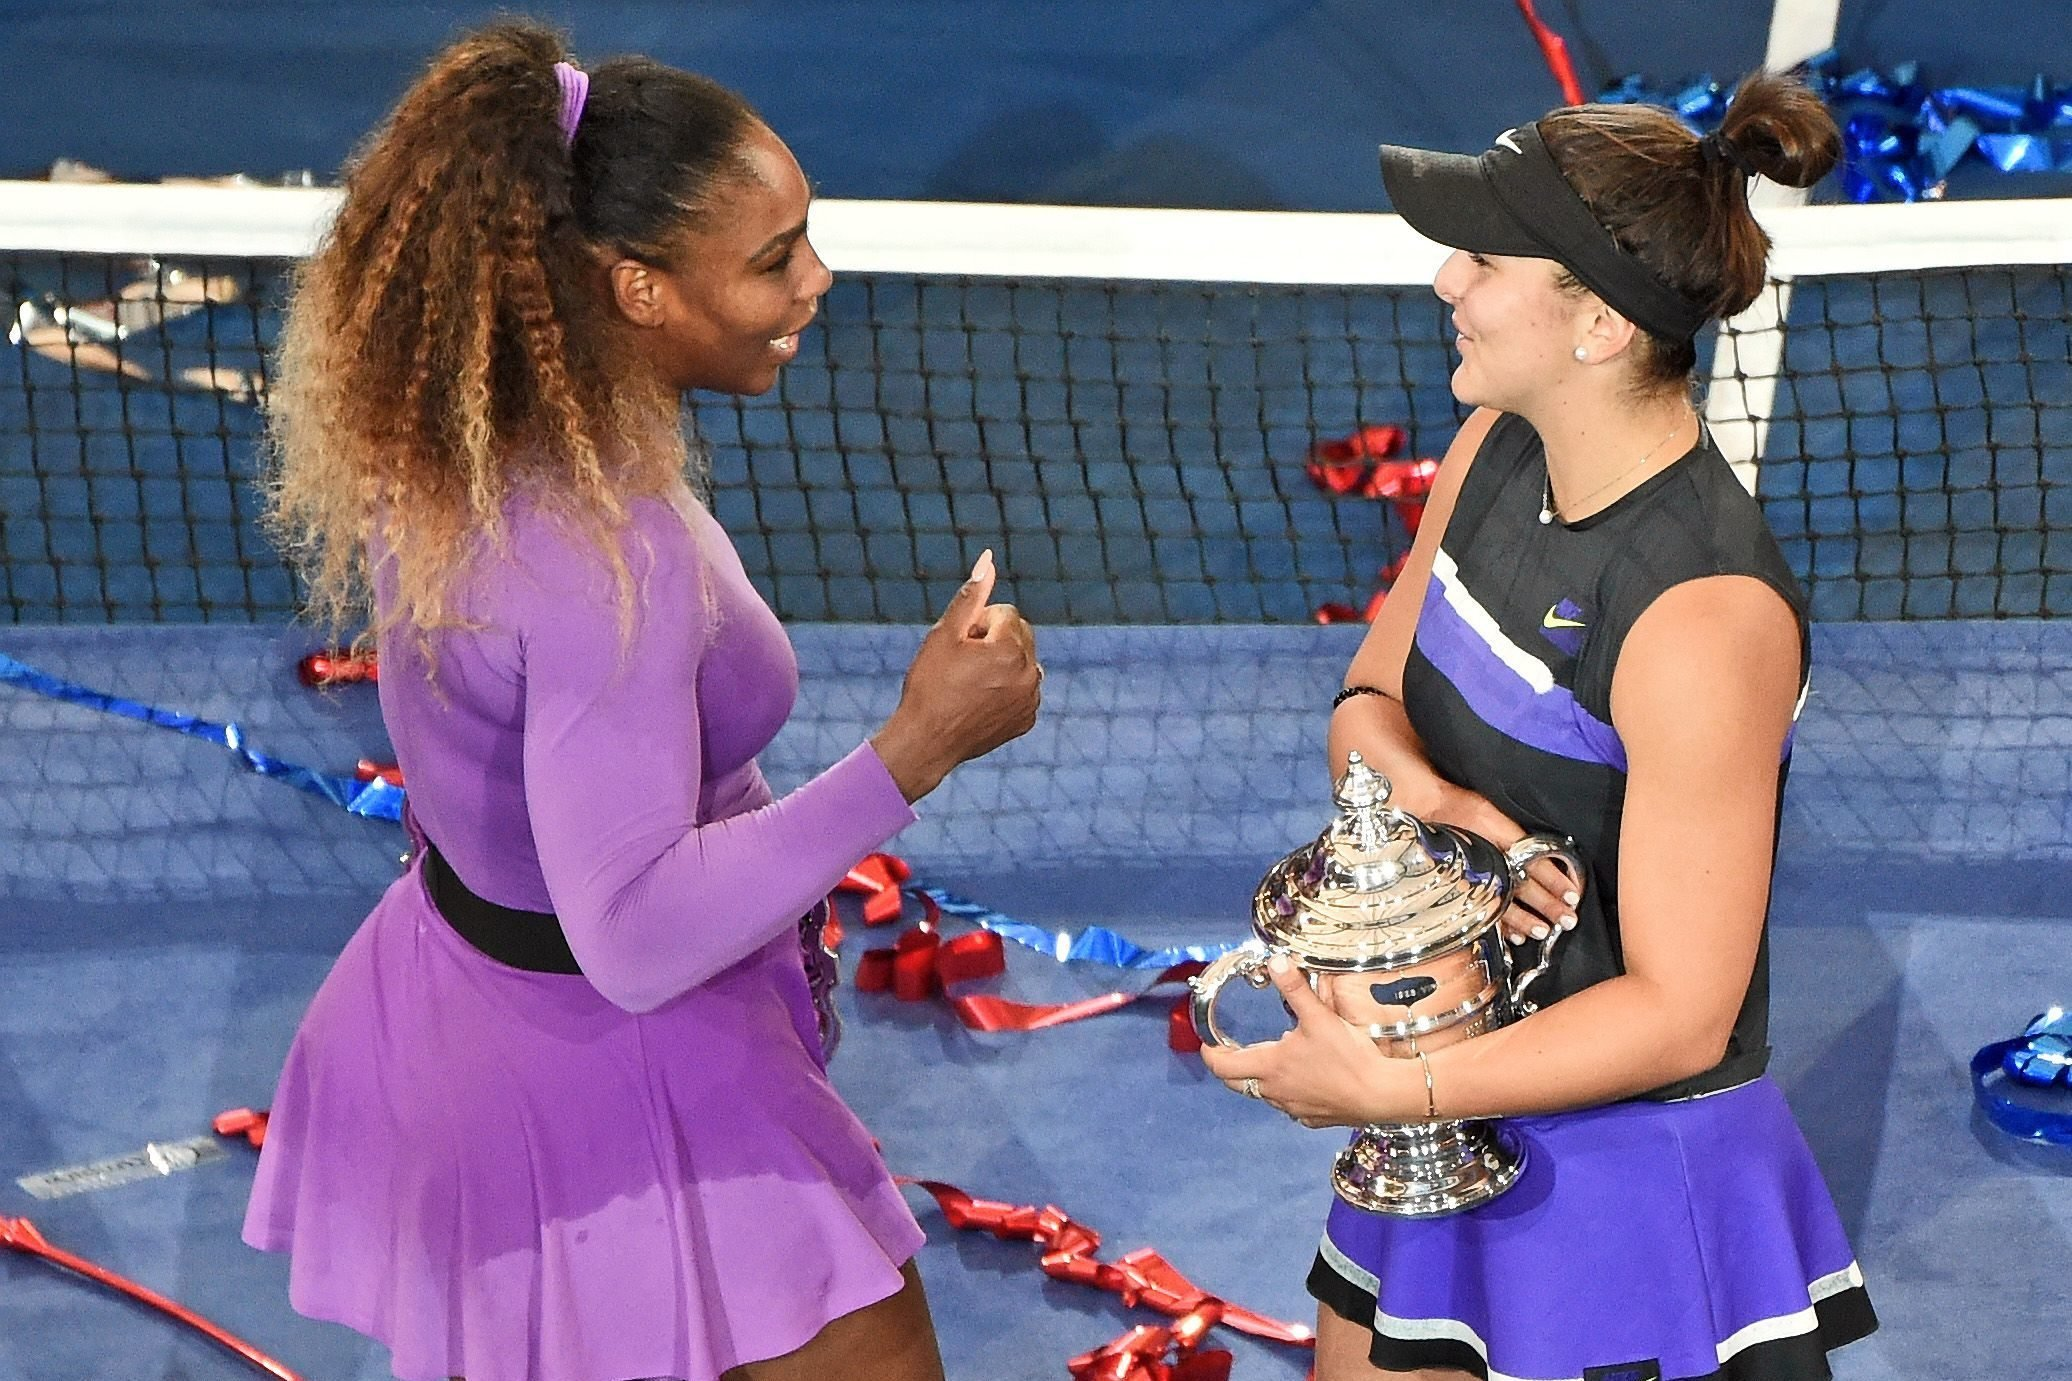 Editorial use only Mandatory Credit: Photo by Kommersant Photo Agency/Shutterstock (10515759x) Bianca Andreescu of Canada, right, during the trophy ceremony after the match with Serena Williams of United States, left. US Open Tennis Championships, Day 14, USTA National Tennis Center, Flushing Meadows, New York, USA - 08 Sep 2019